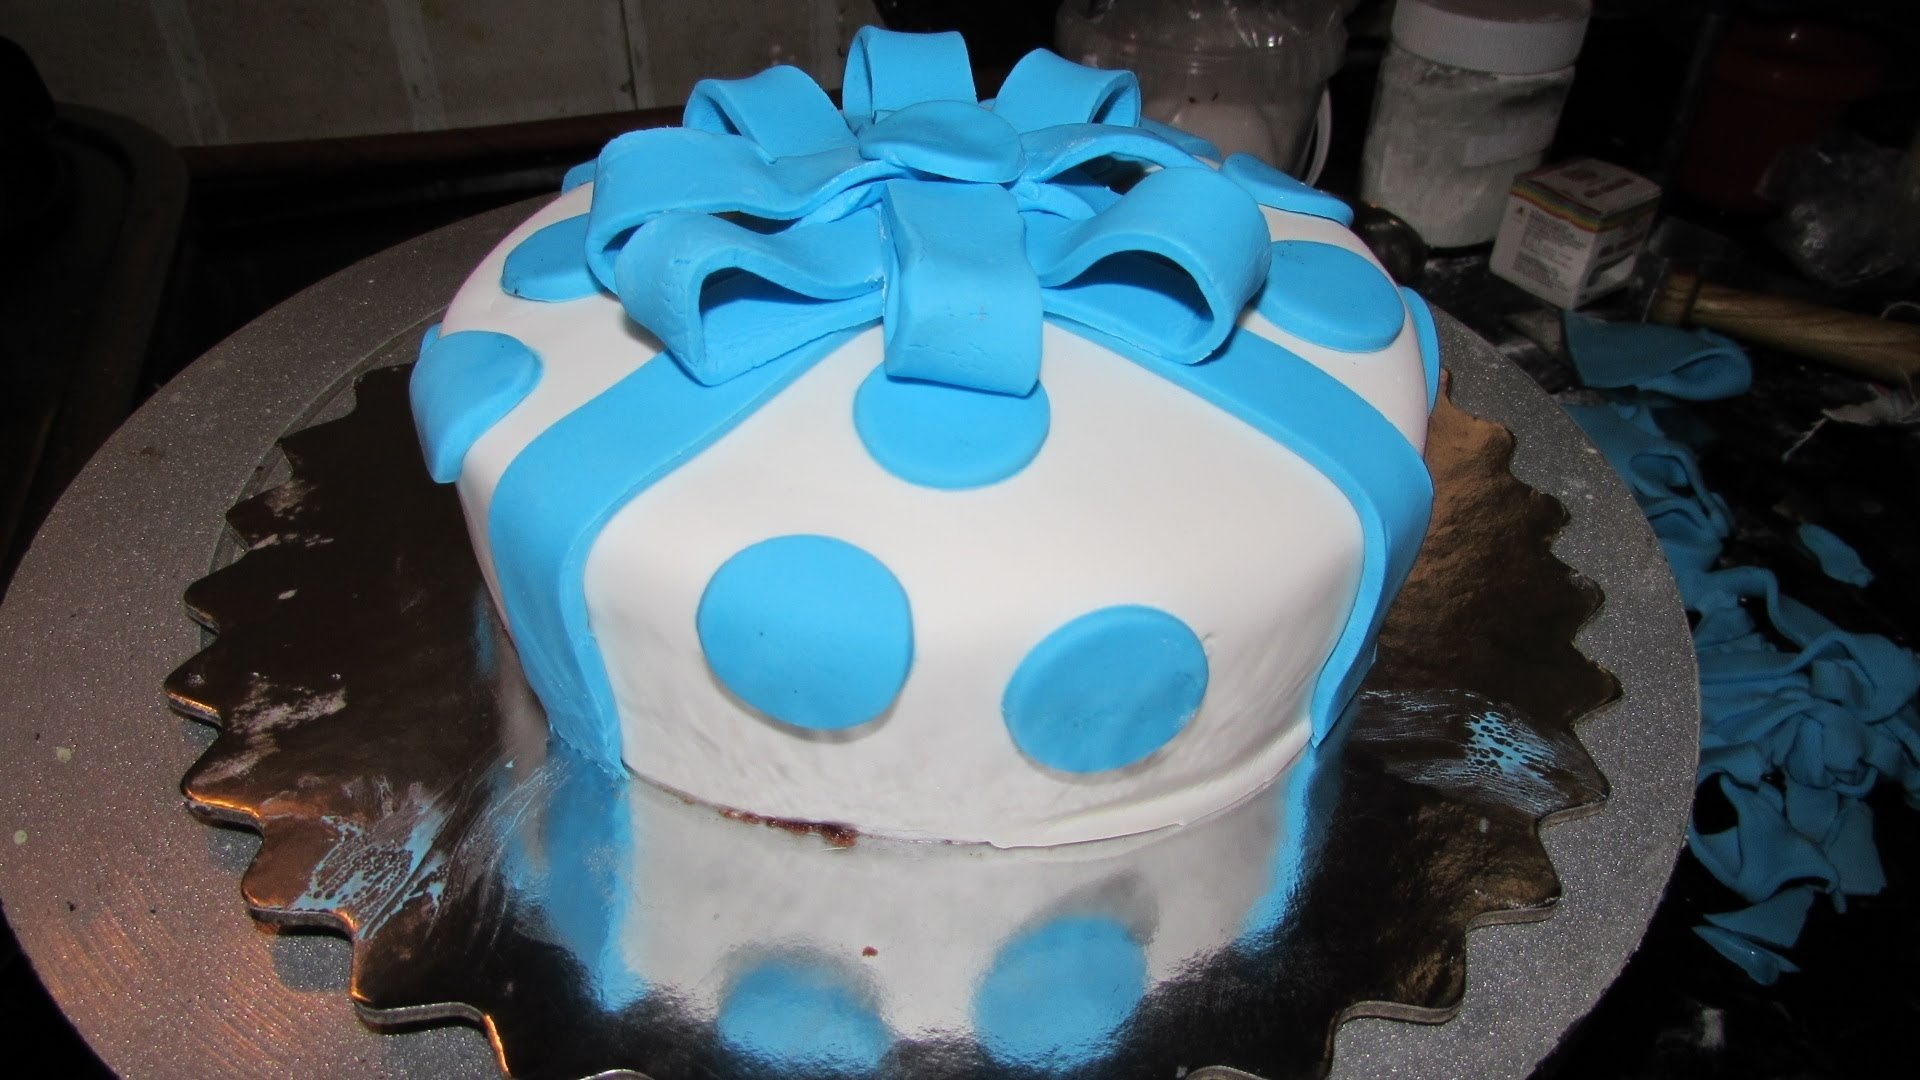 10 Famous Fondant Cake Ideas For Beginners fondant recipe how to make fondant cake simple easy fondant